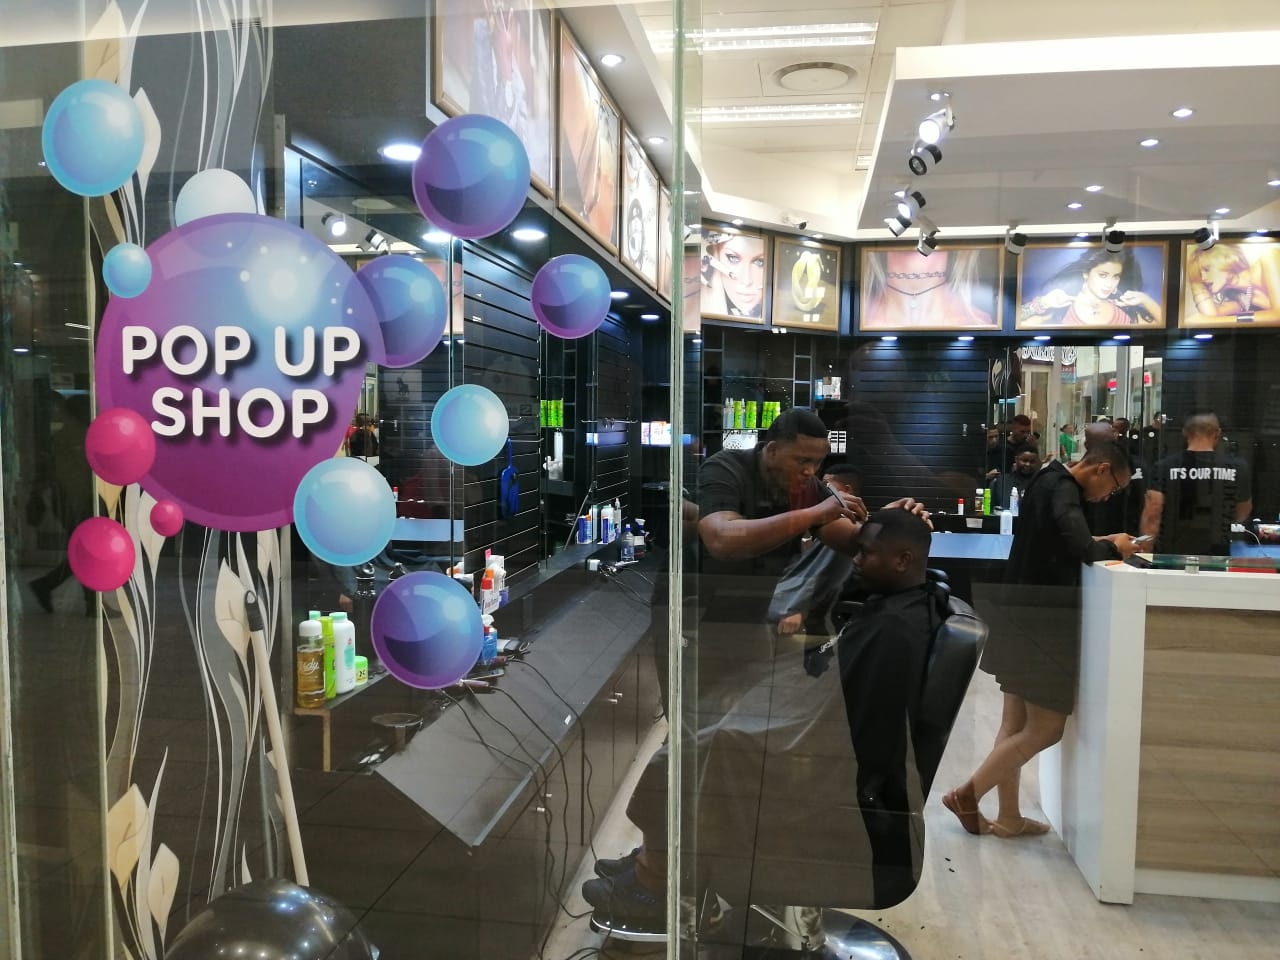 The Born Free Barbers leverage Pop-Up concept in partnership with Mall Ads